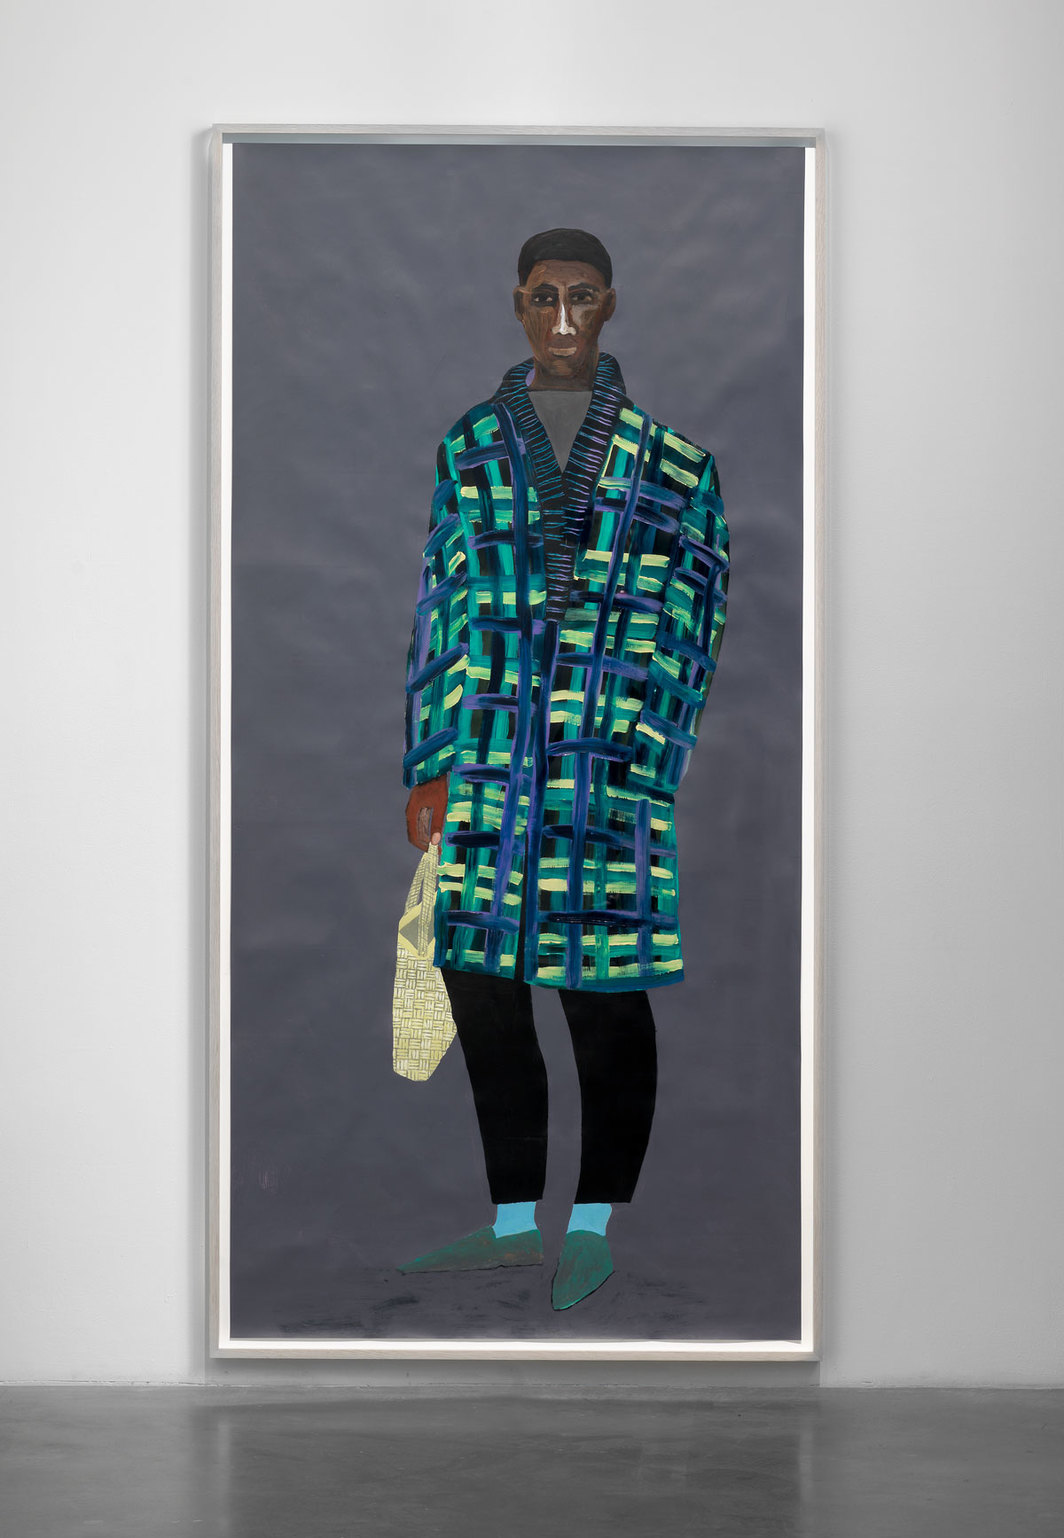 Lubaina Himid, Shopping for a Loaf Tin, 2019, acrylic on paper. Installation view, New Museum, New York. Photo: Dario Lasagni.